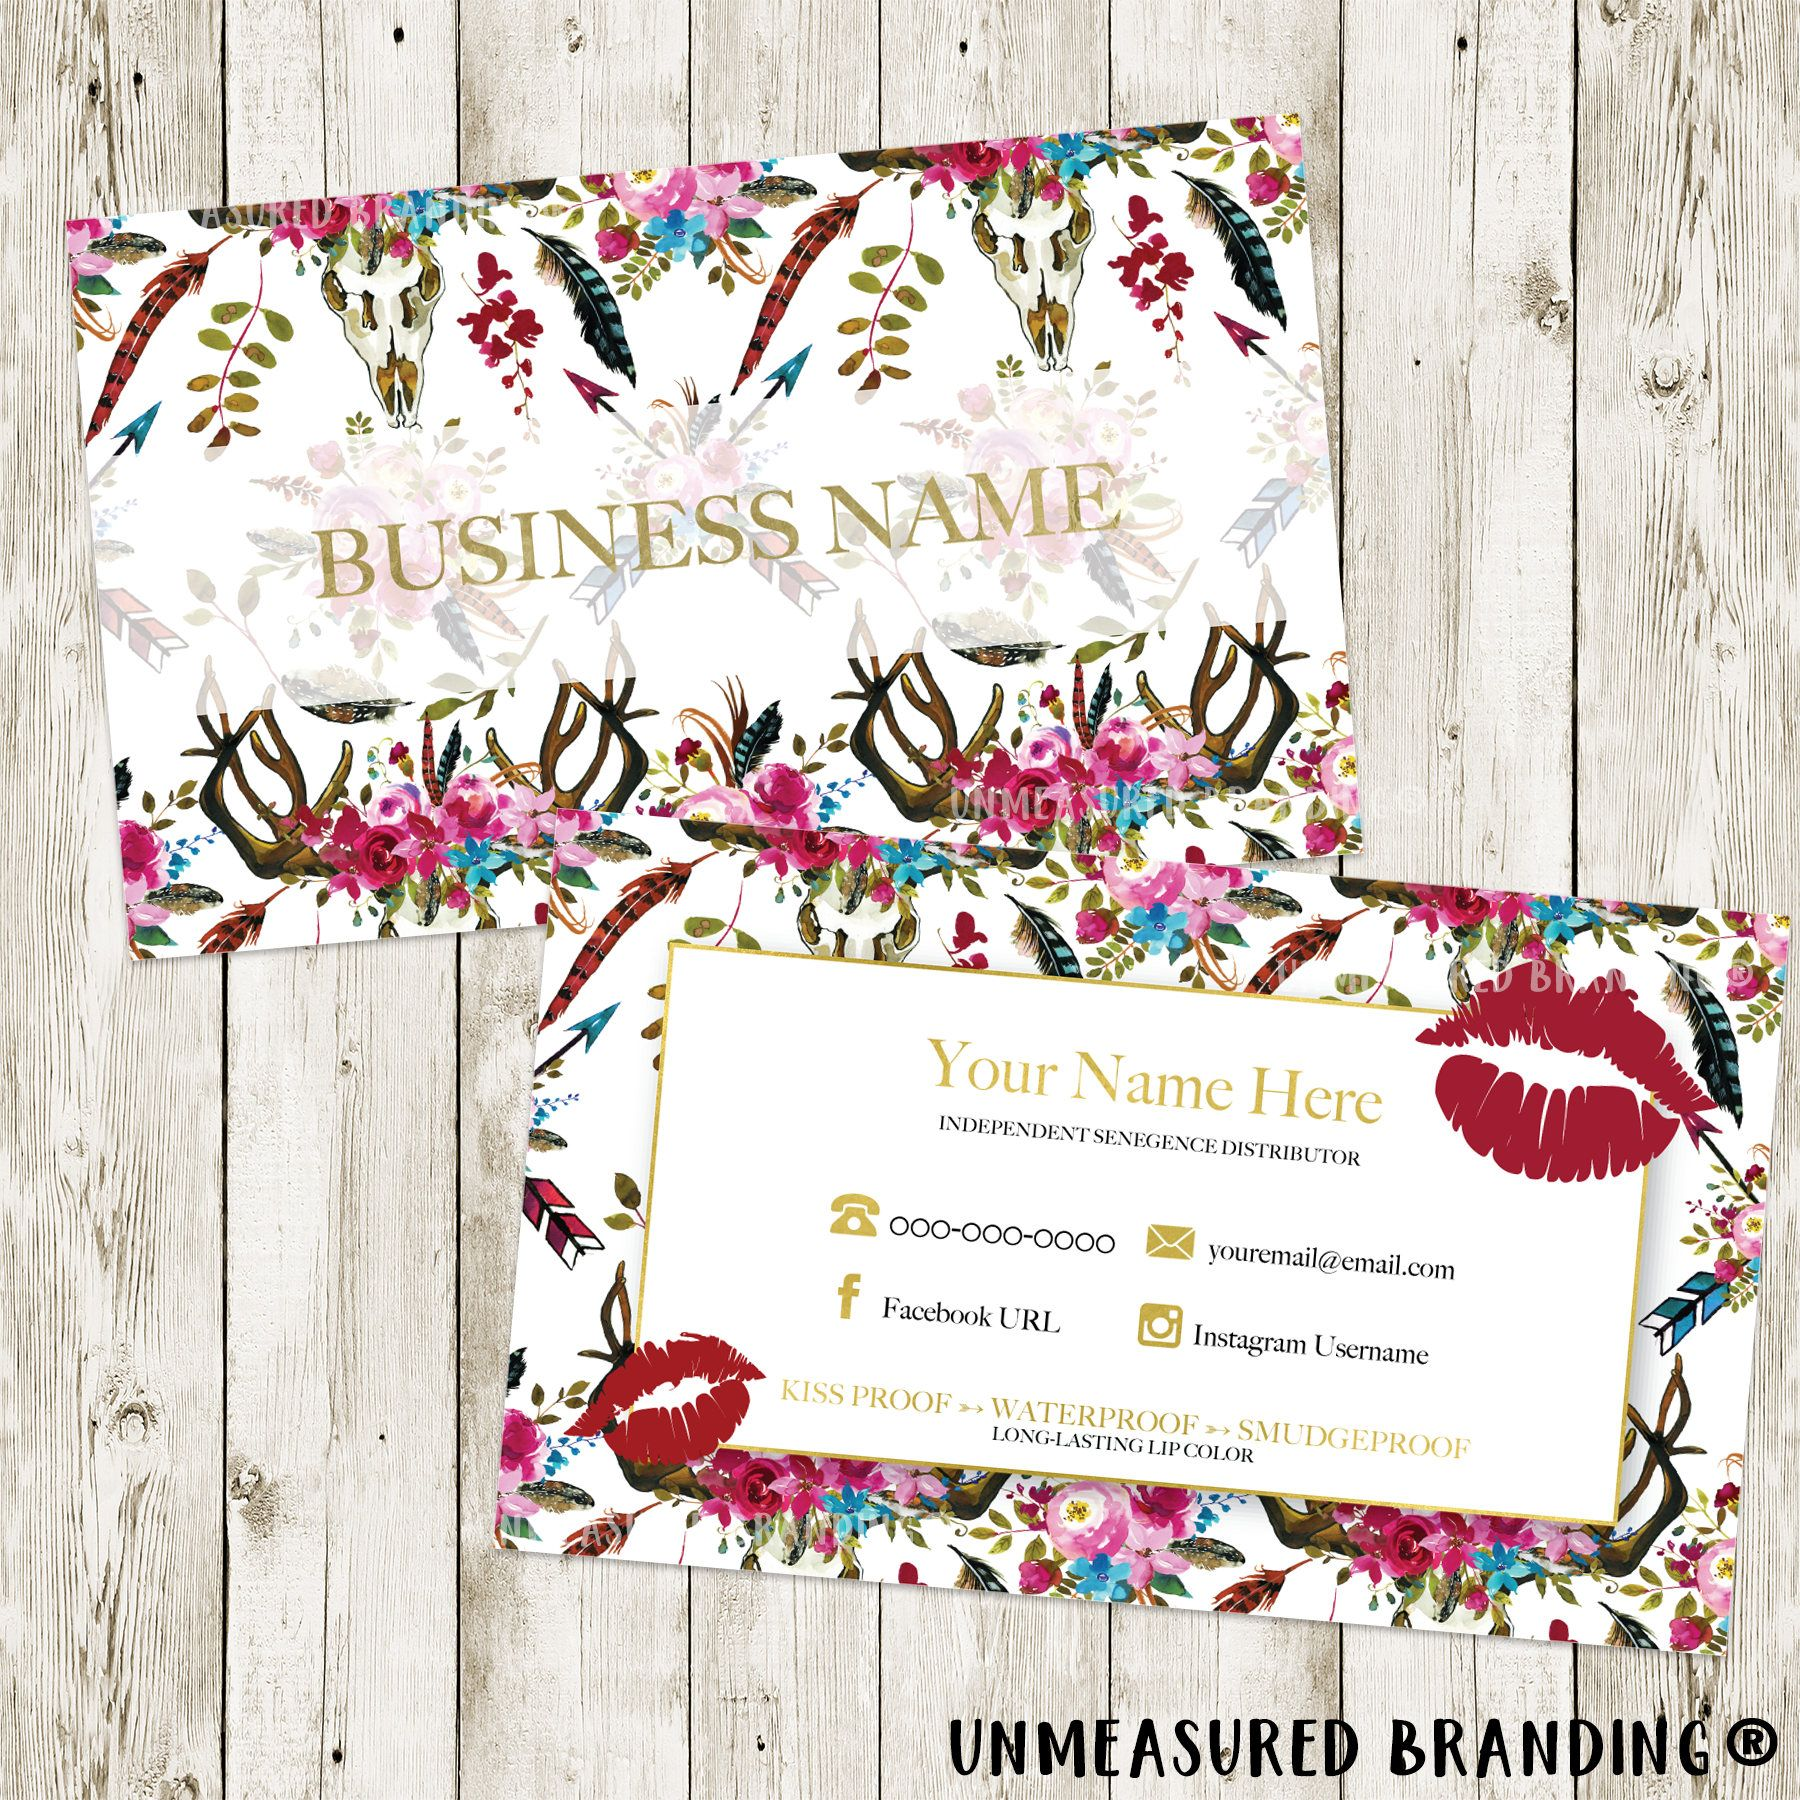 LipSense Business Cards, Business Cards, Digital Files, LipSense Printable, LipSense Cards, Boho Business Cards, SeneGence, LipSense by UnmeasuredBranding on Etsy